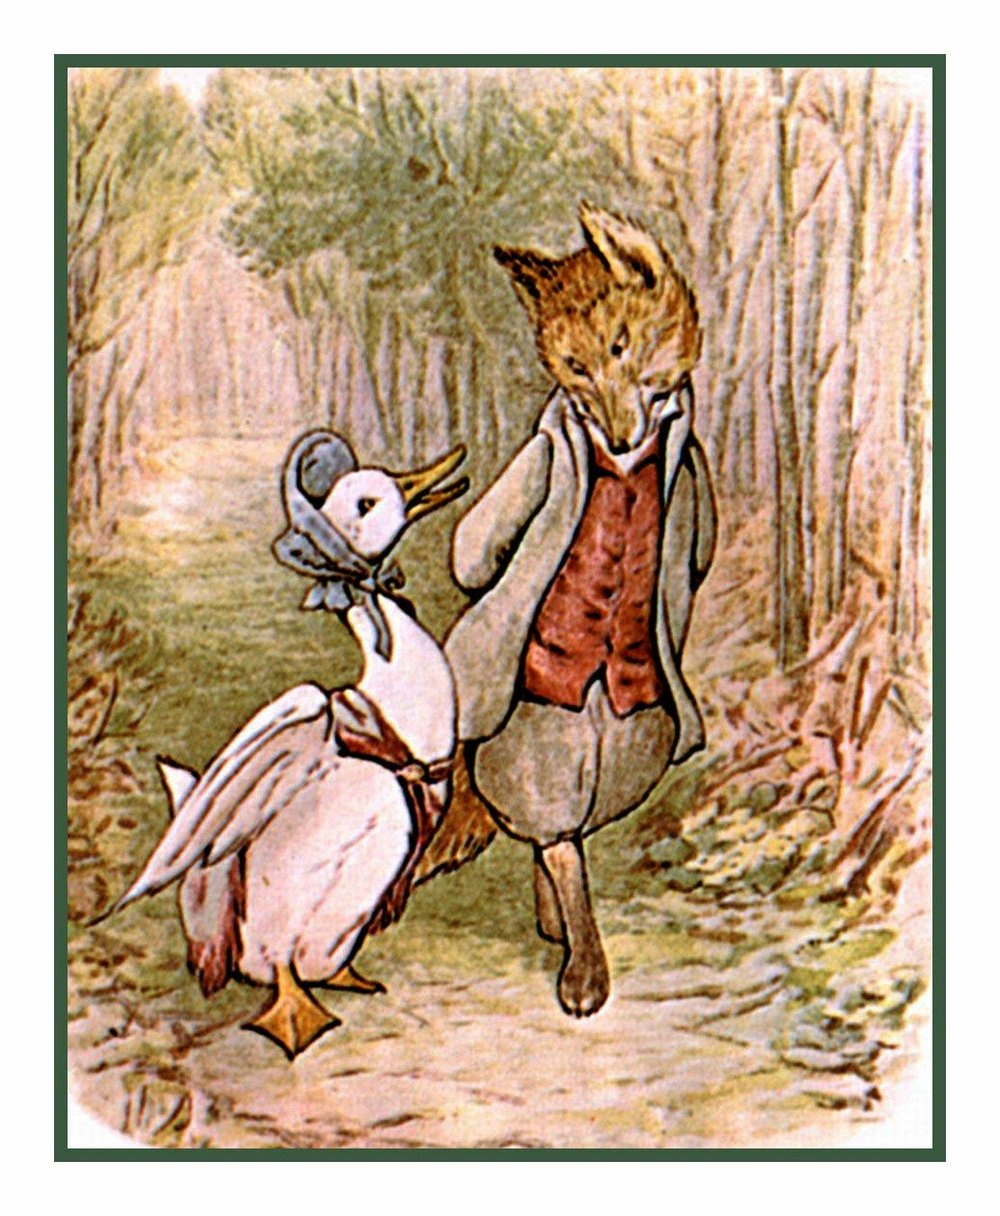 From The Tale of Jemima Puddle-Duck by Beatrix Potter